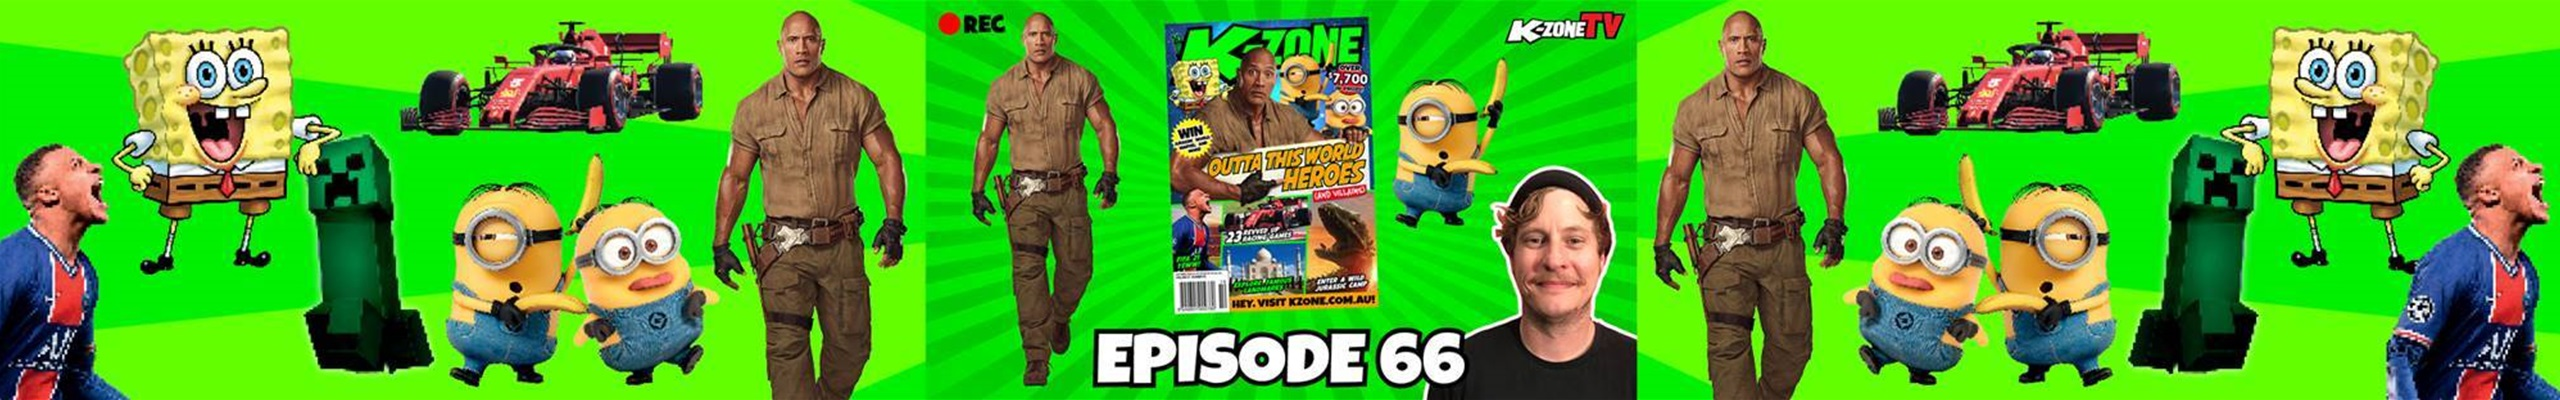 K-Zone TV Episode 66: Outta This World Heroes (and Villains)